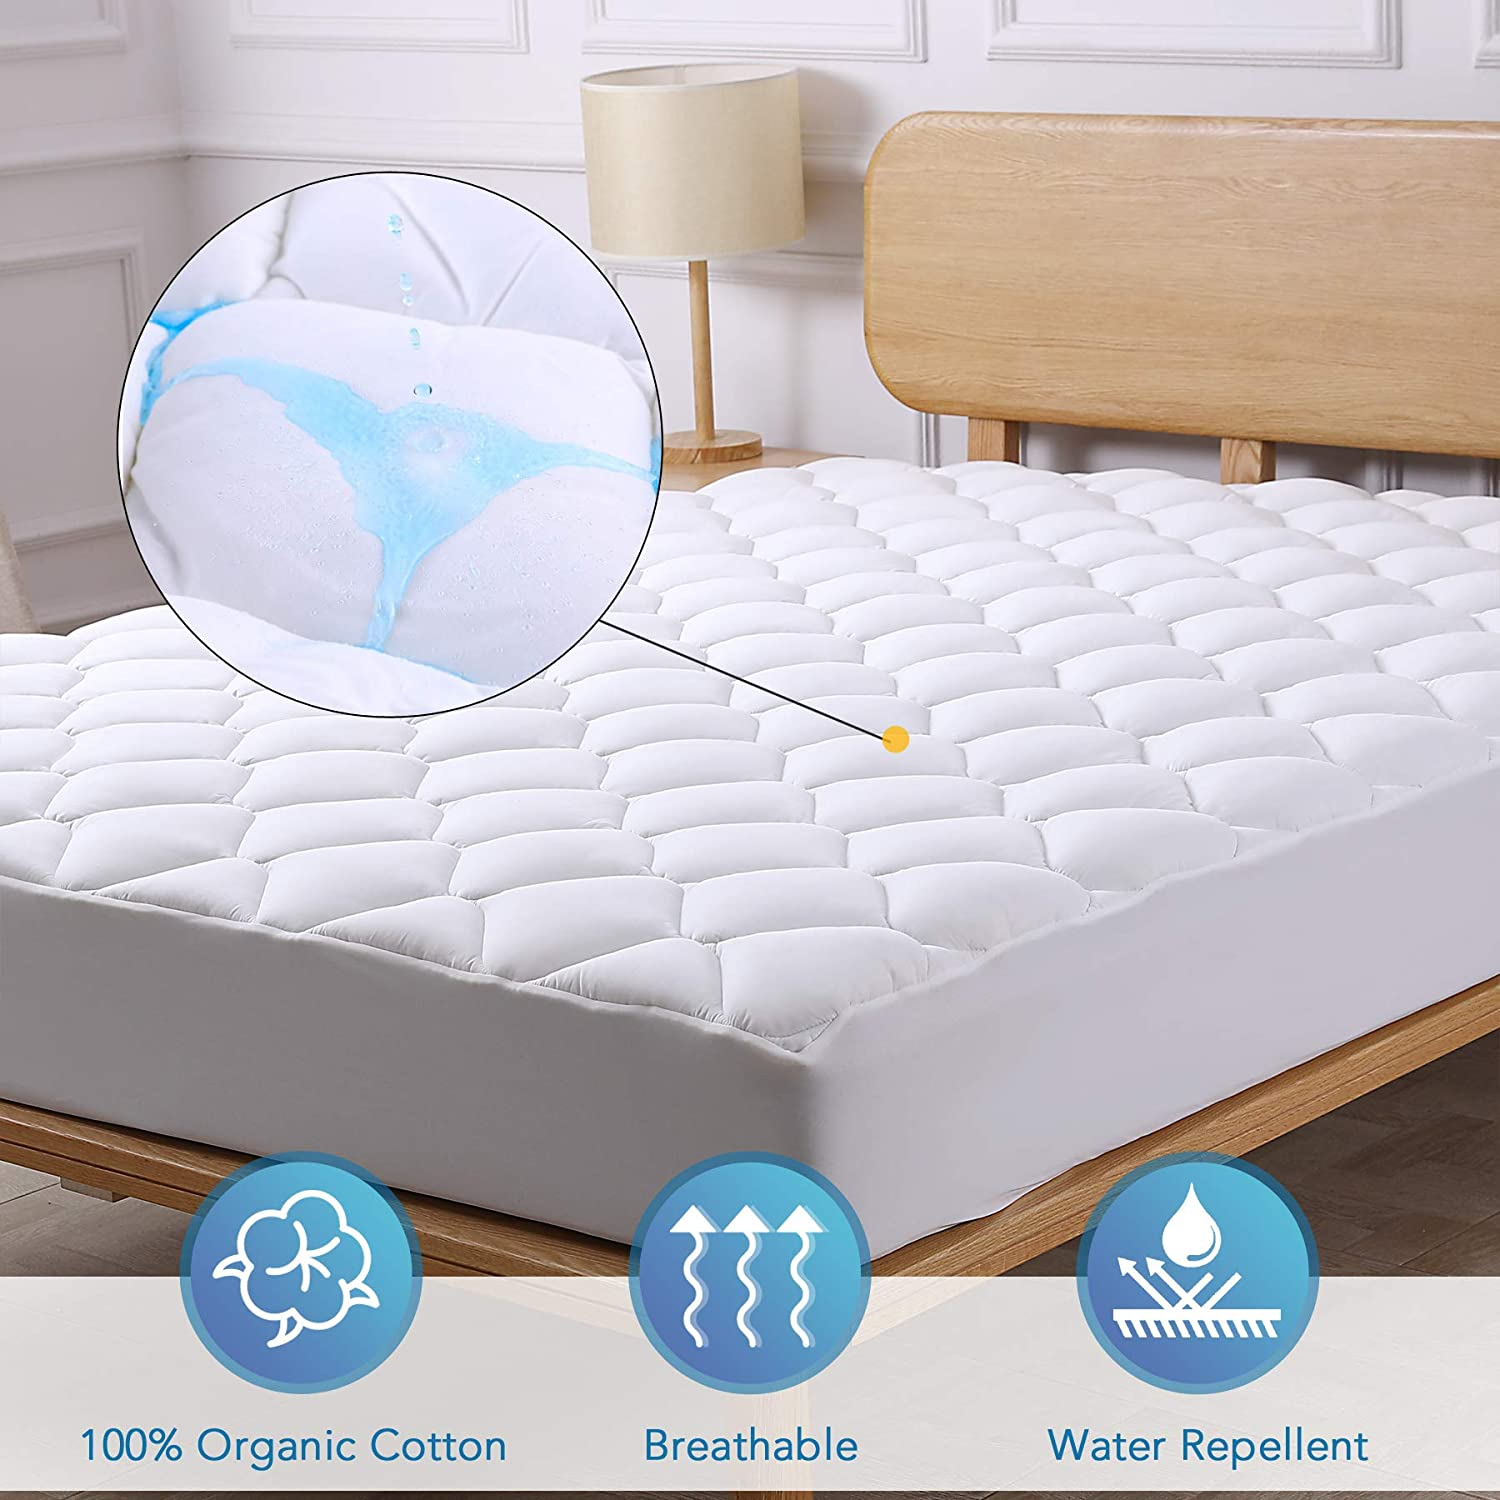 CO-Z Mattress Pad Cover Cotton Twin Size - Bedding Quilted Ultra Soft Overfilled PillowTop Mattress Topper with Deep Pocket Stretch up to 8-21 inch OEKO-TEX Certified 3M Scotchgard Moisture Management